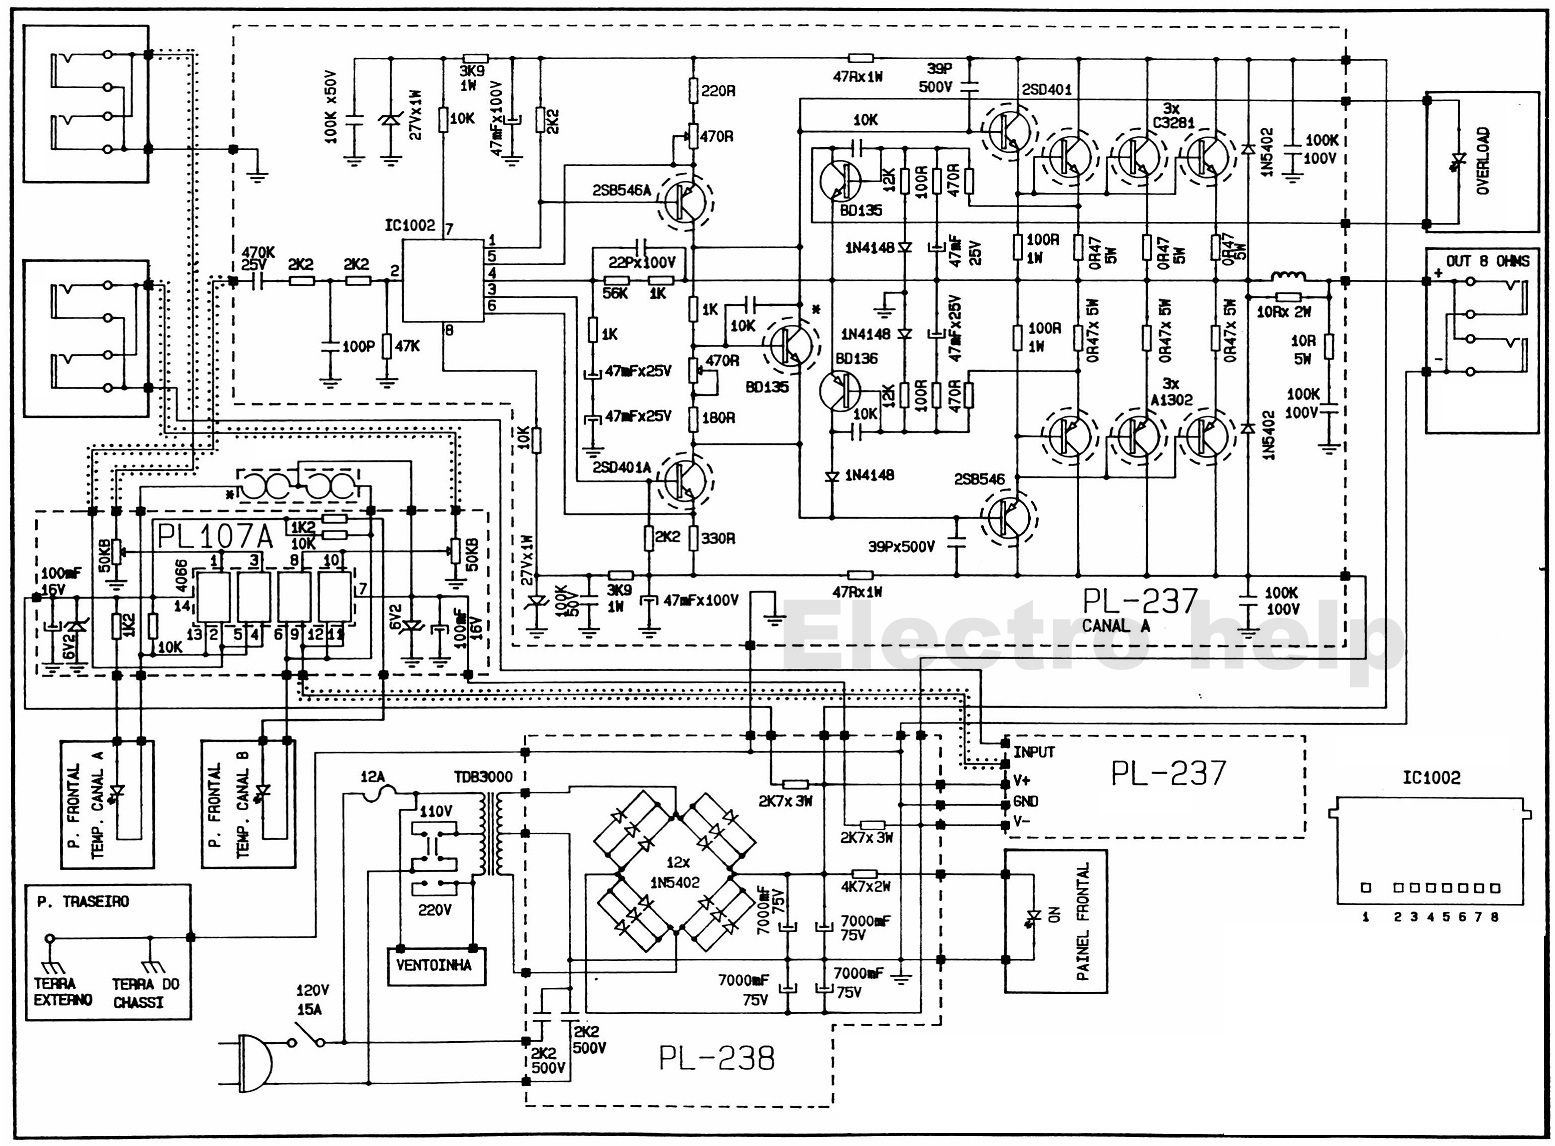 Outstanding blok diagram elaboration wiring standart installations blok diagram endoskopi gallery how to guide and refrence ccuart Choice Image